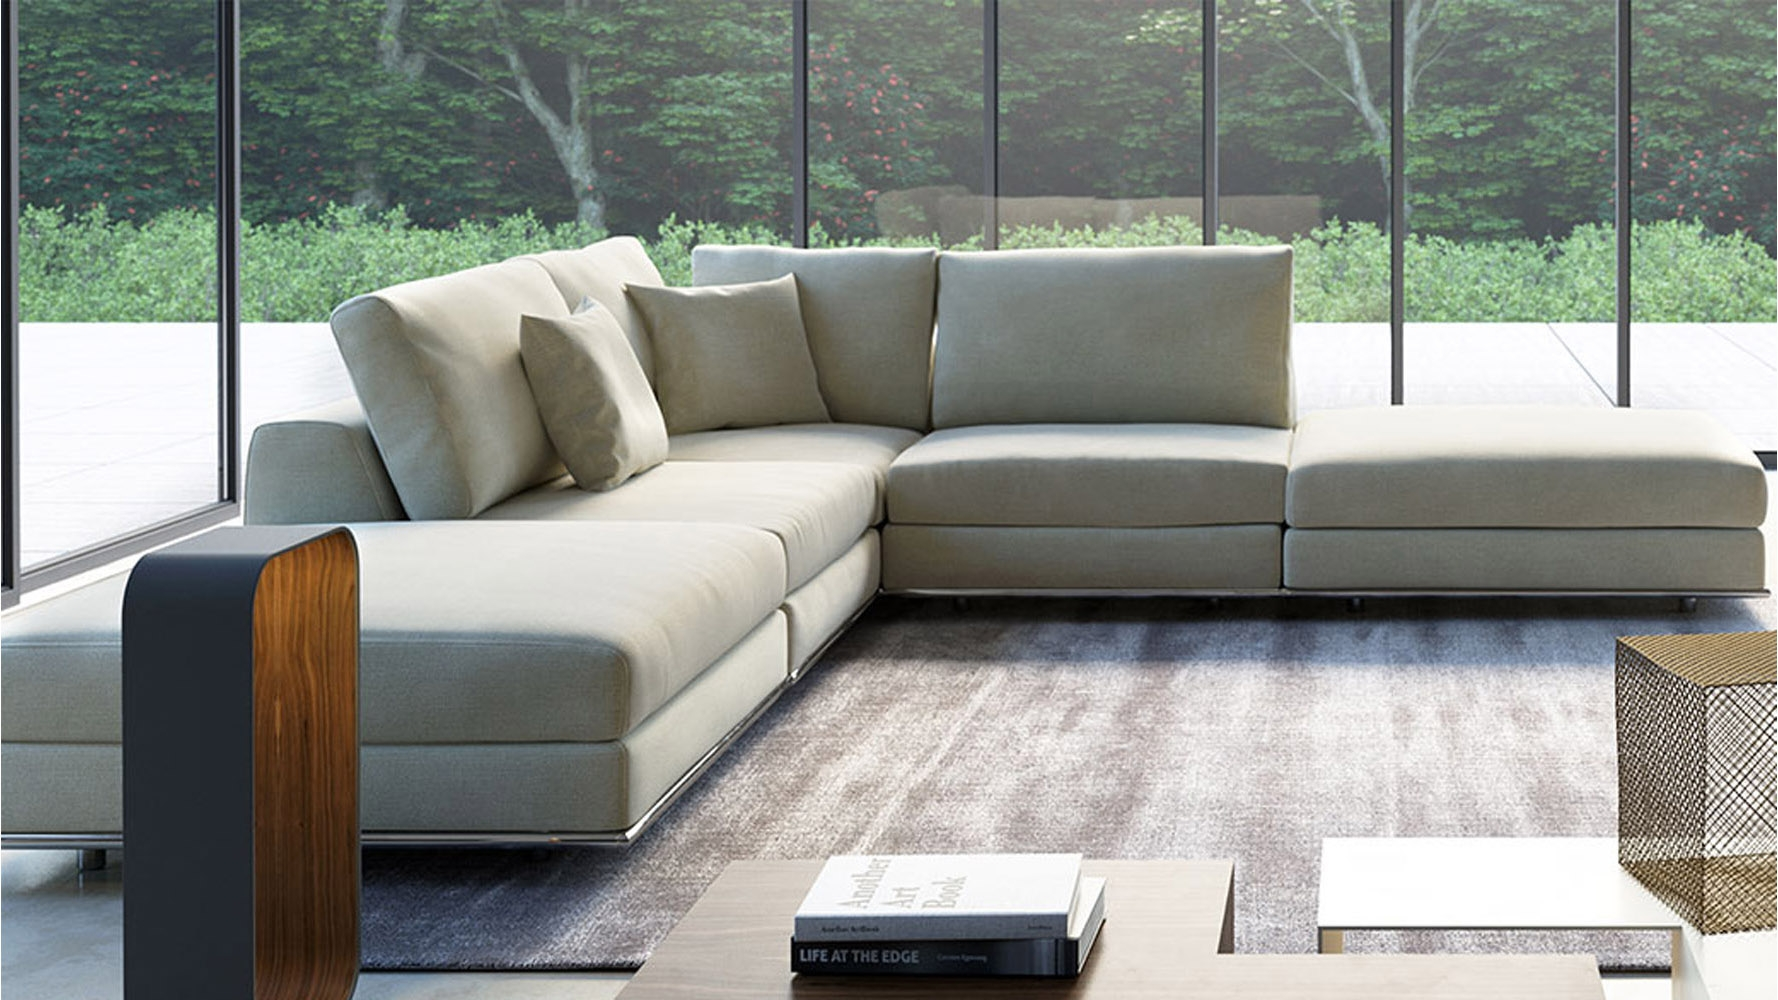 Modern Persis Armless Corner Sectional Sofa Moonbeam Zuri Regarding Armless Sectional Sofas (#11 of 12)